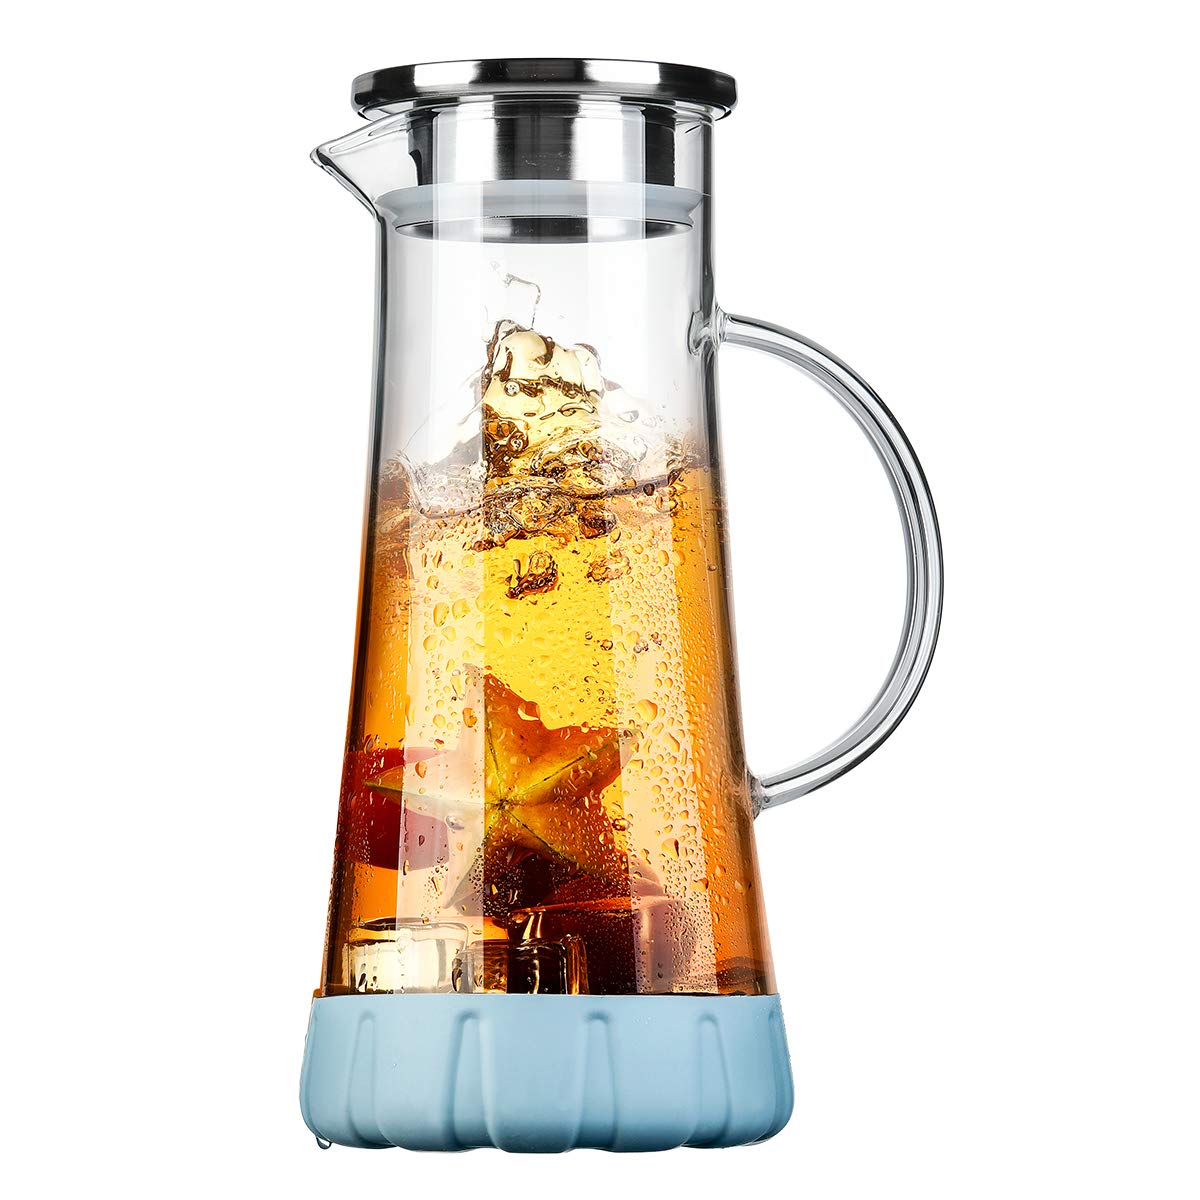 BOQO Glass Water Pitcher, 50 Oz Drip-Free Glass Pitcher with Lid, Glass Water Jug with Particular Coaster, Water Carafe, Juice Pitcher, Water Jar For Homemade Beverage/Ice Tea/Milk/Coffee/Serving Wine